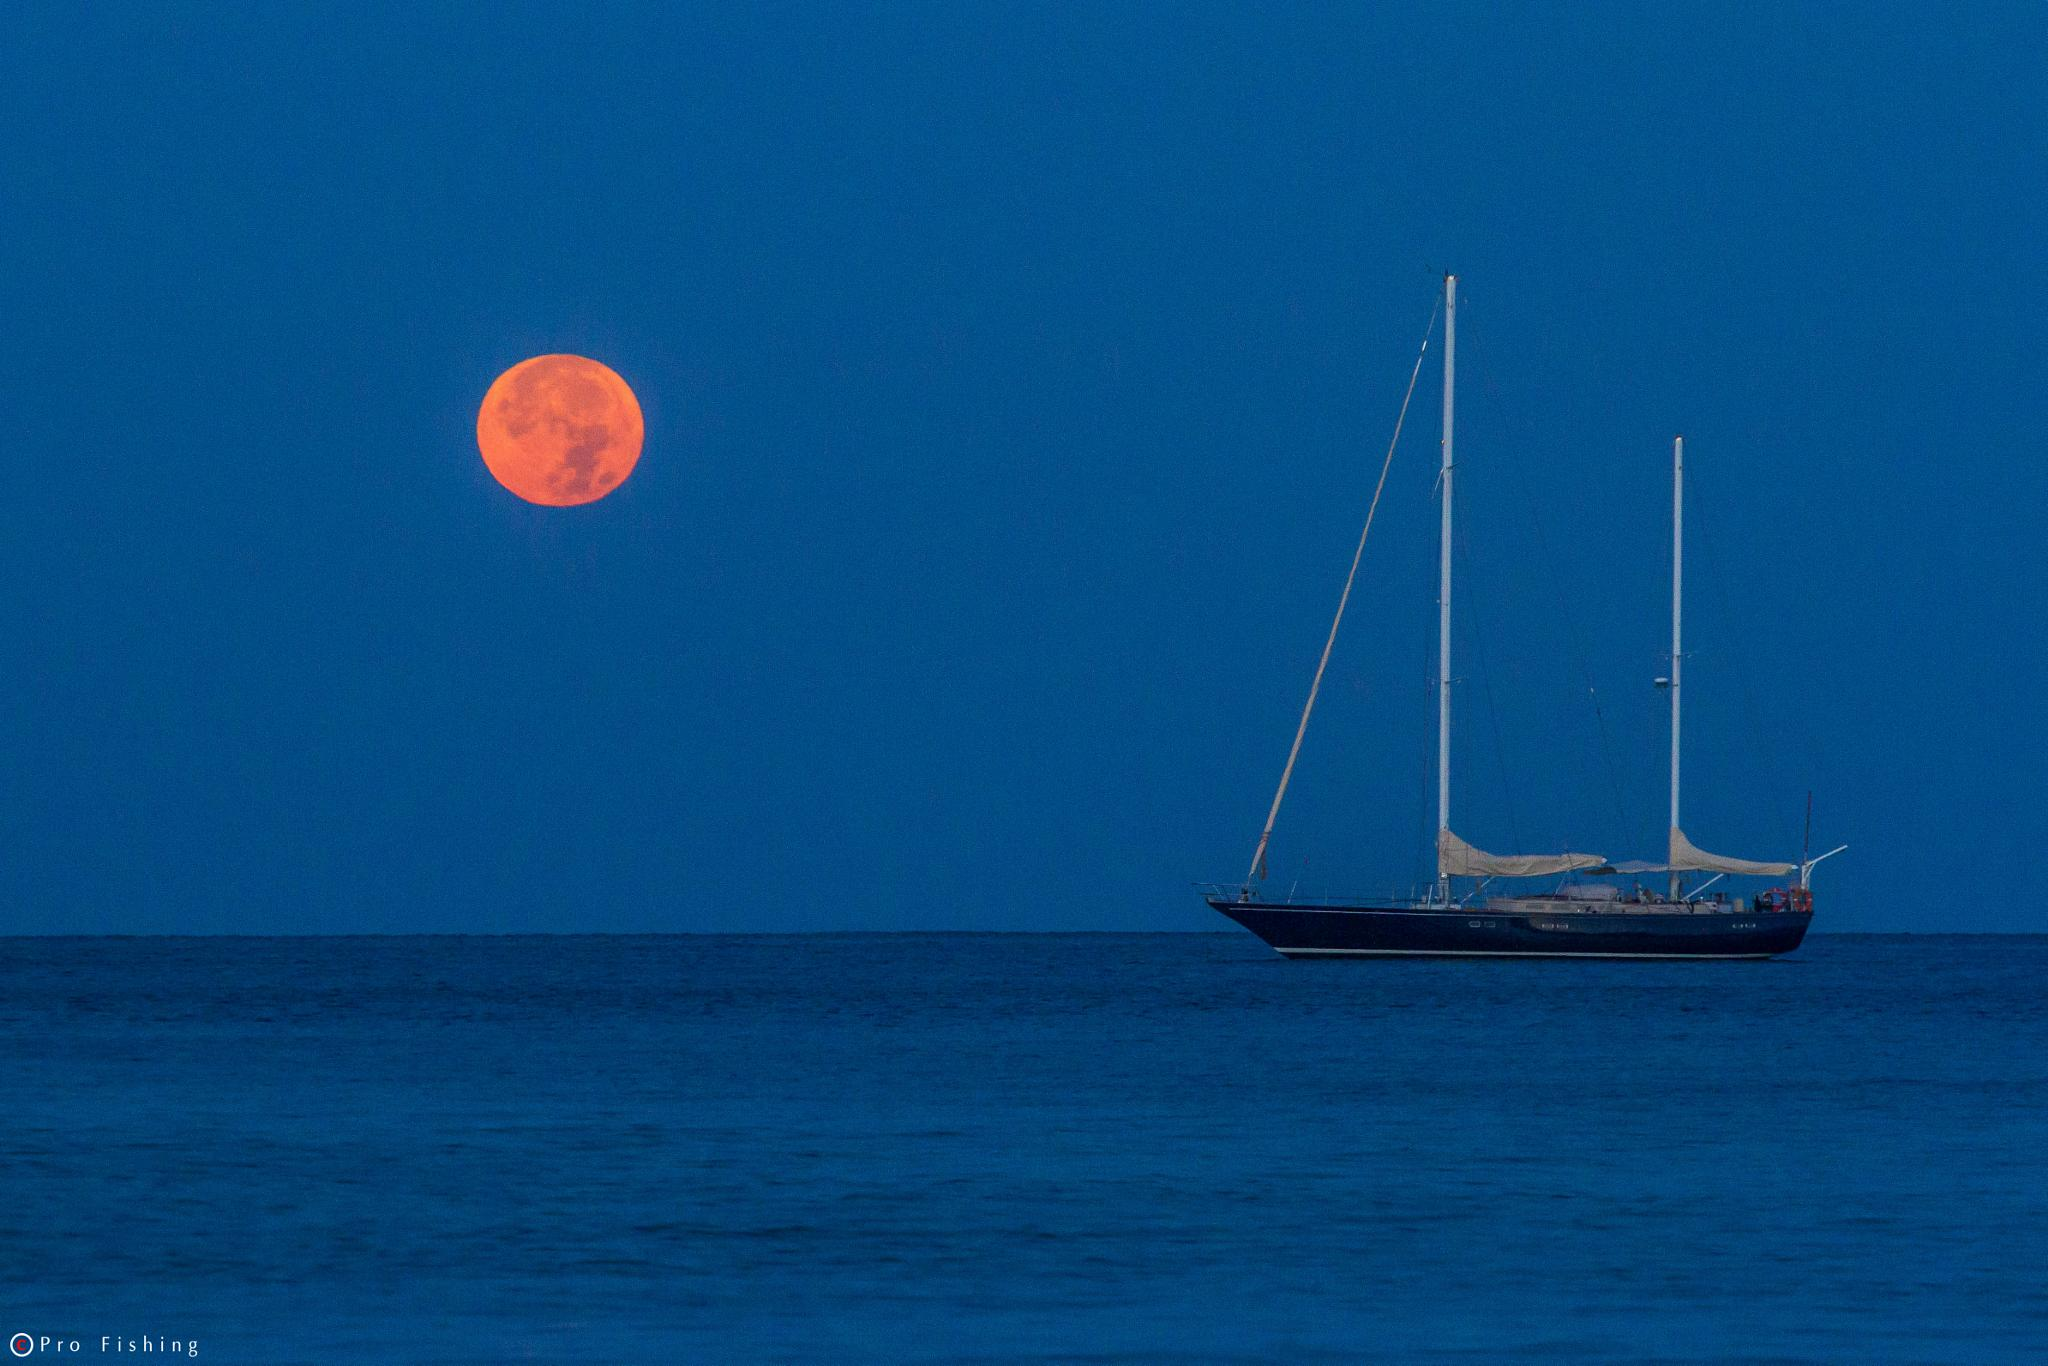 Moon fall by Pro Fishing Photographer